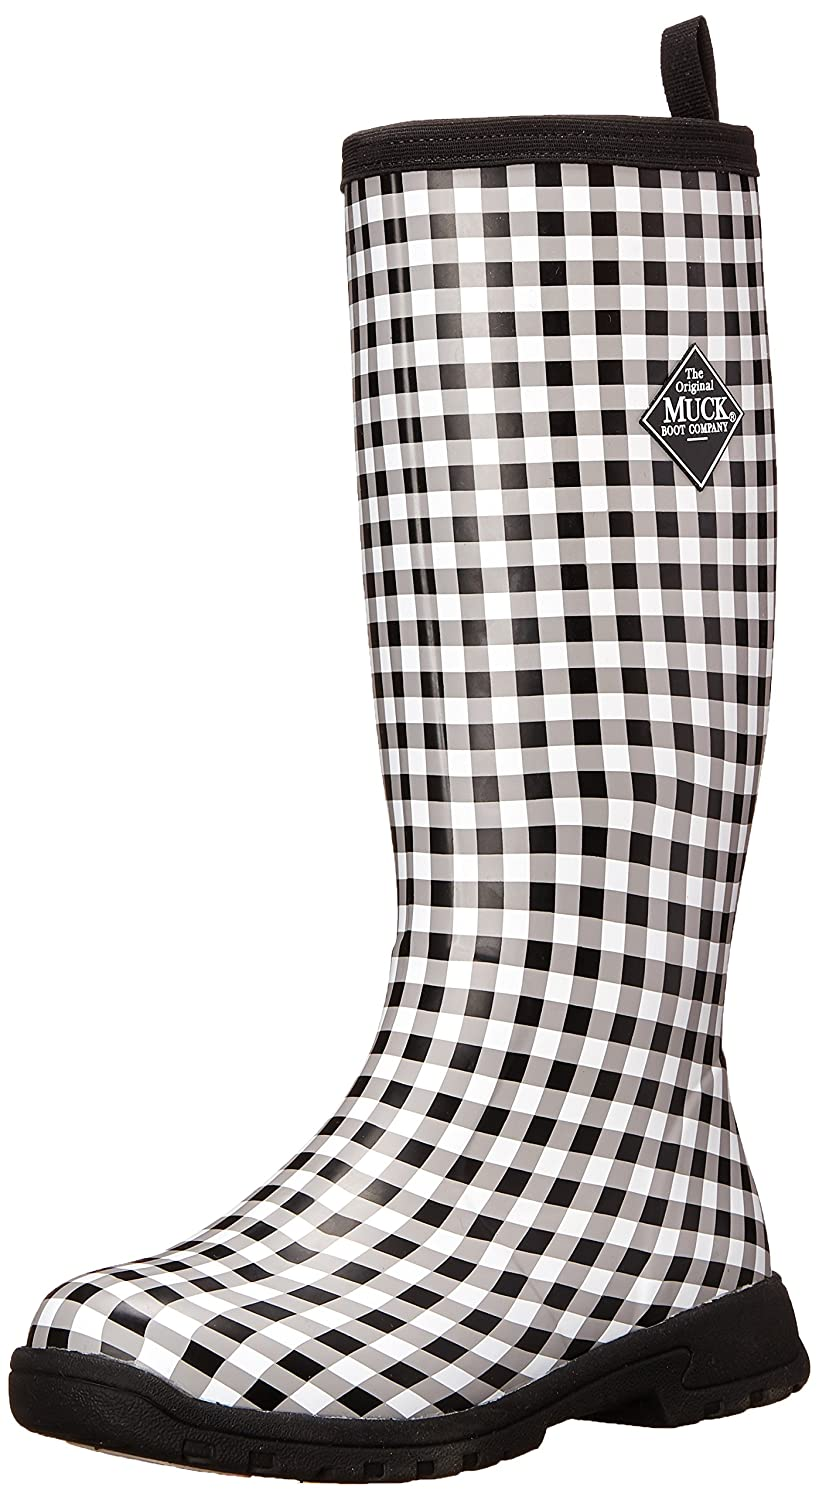 MuckBoots Women's Breezy Tall Insulated Rain Boot B00NV63W5U 7 B(M) US|Black Gingham